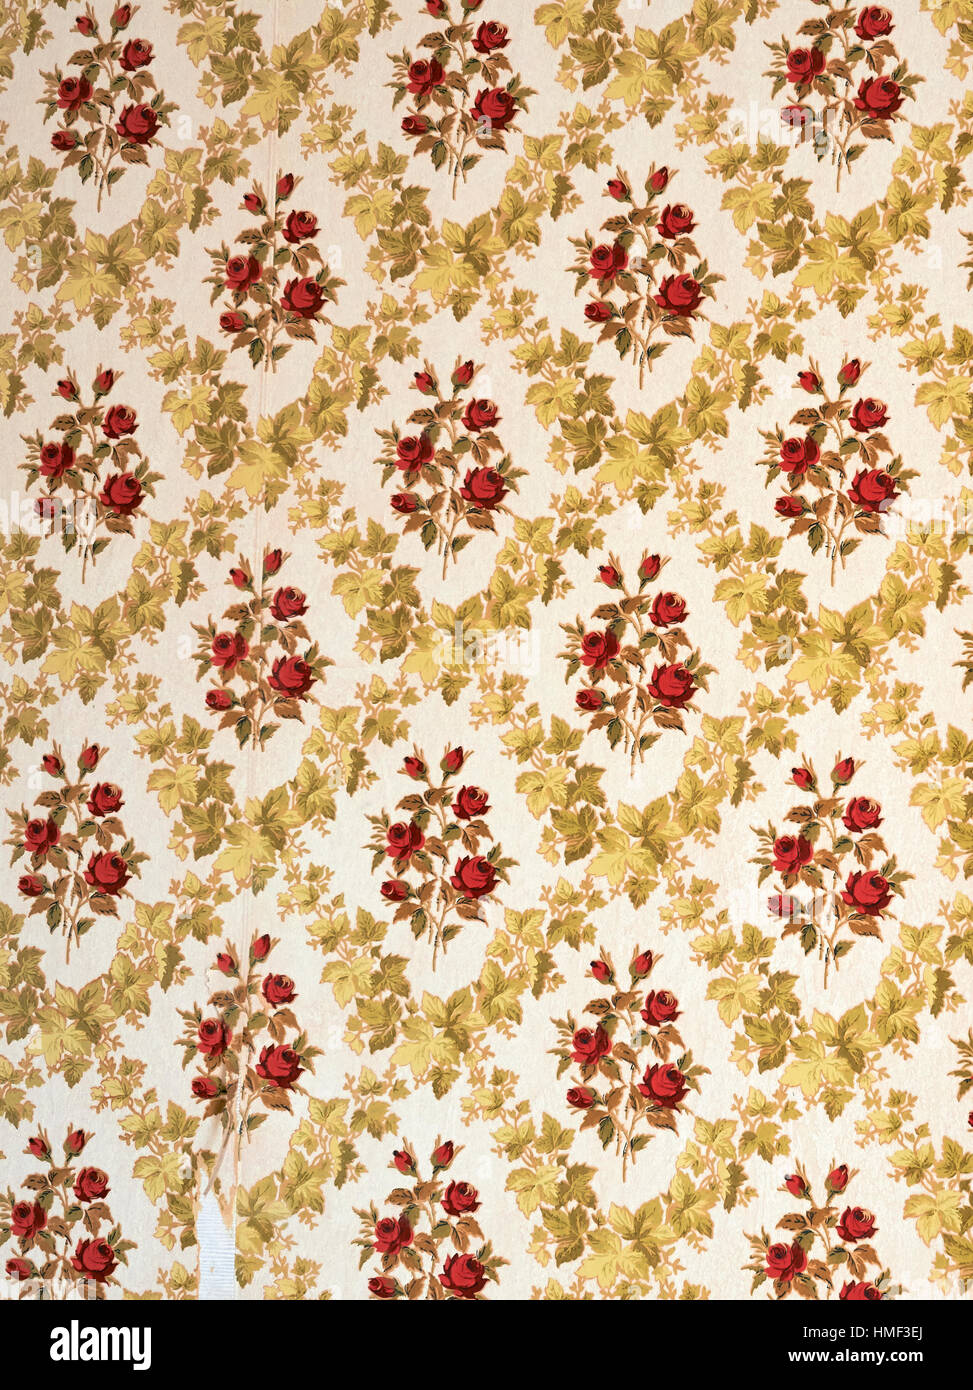 Piece of old damaged wallpaper with a retro vertical stripe pattern and floral design - Stock Image